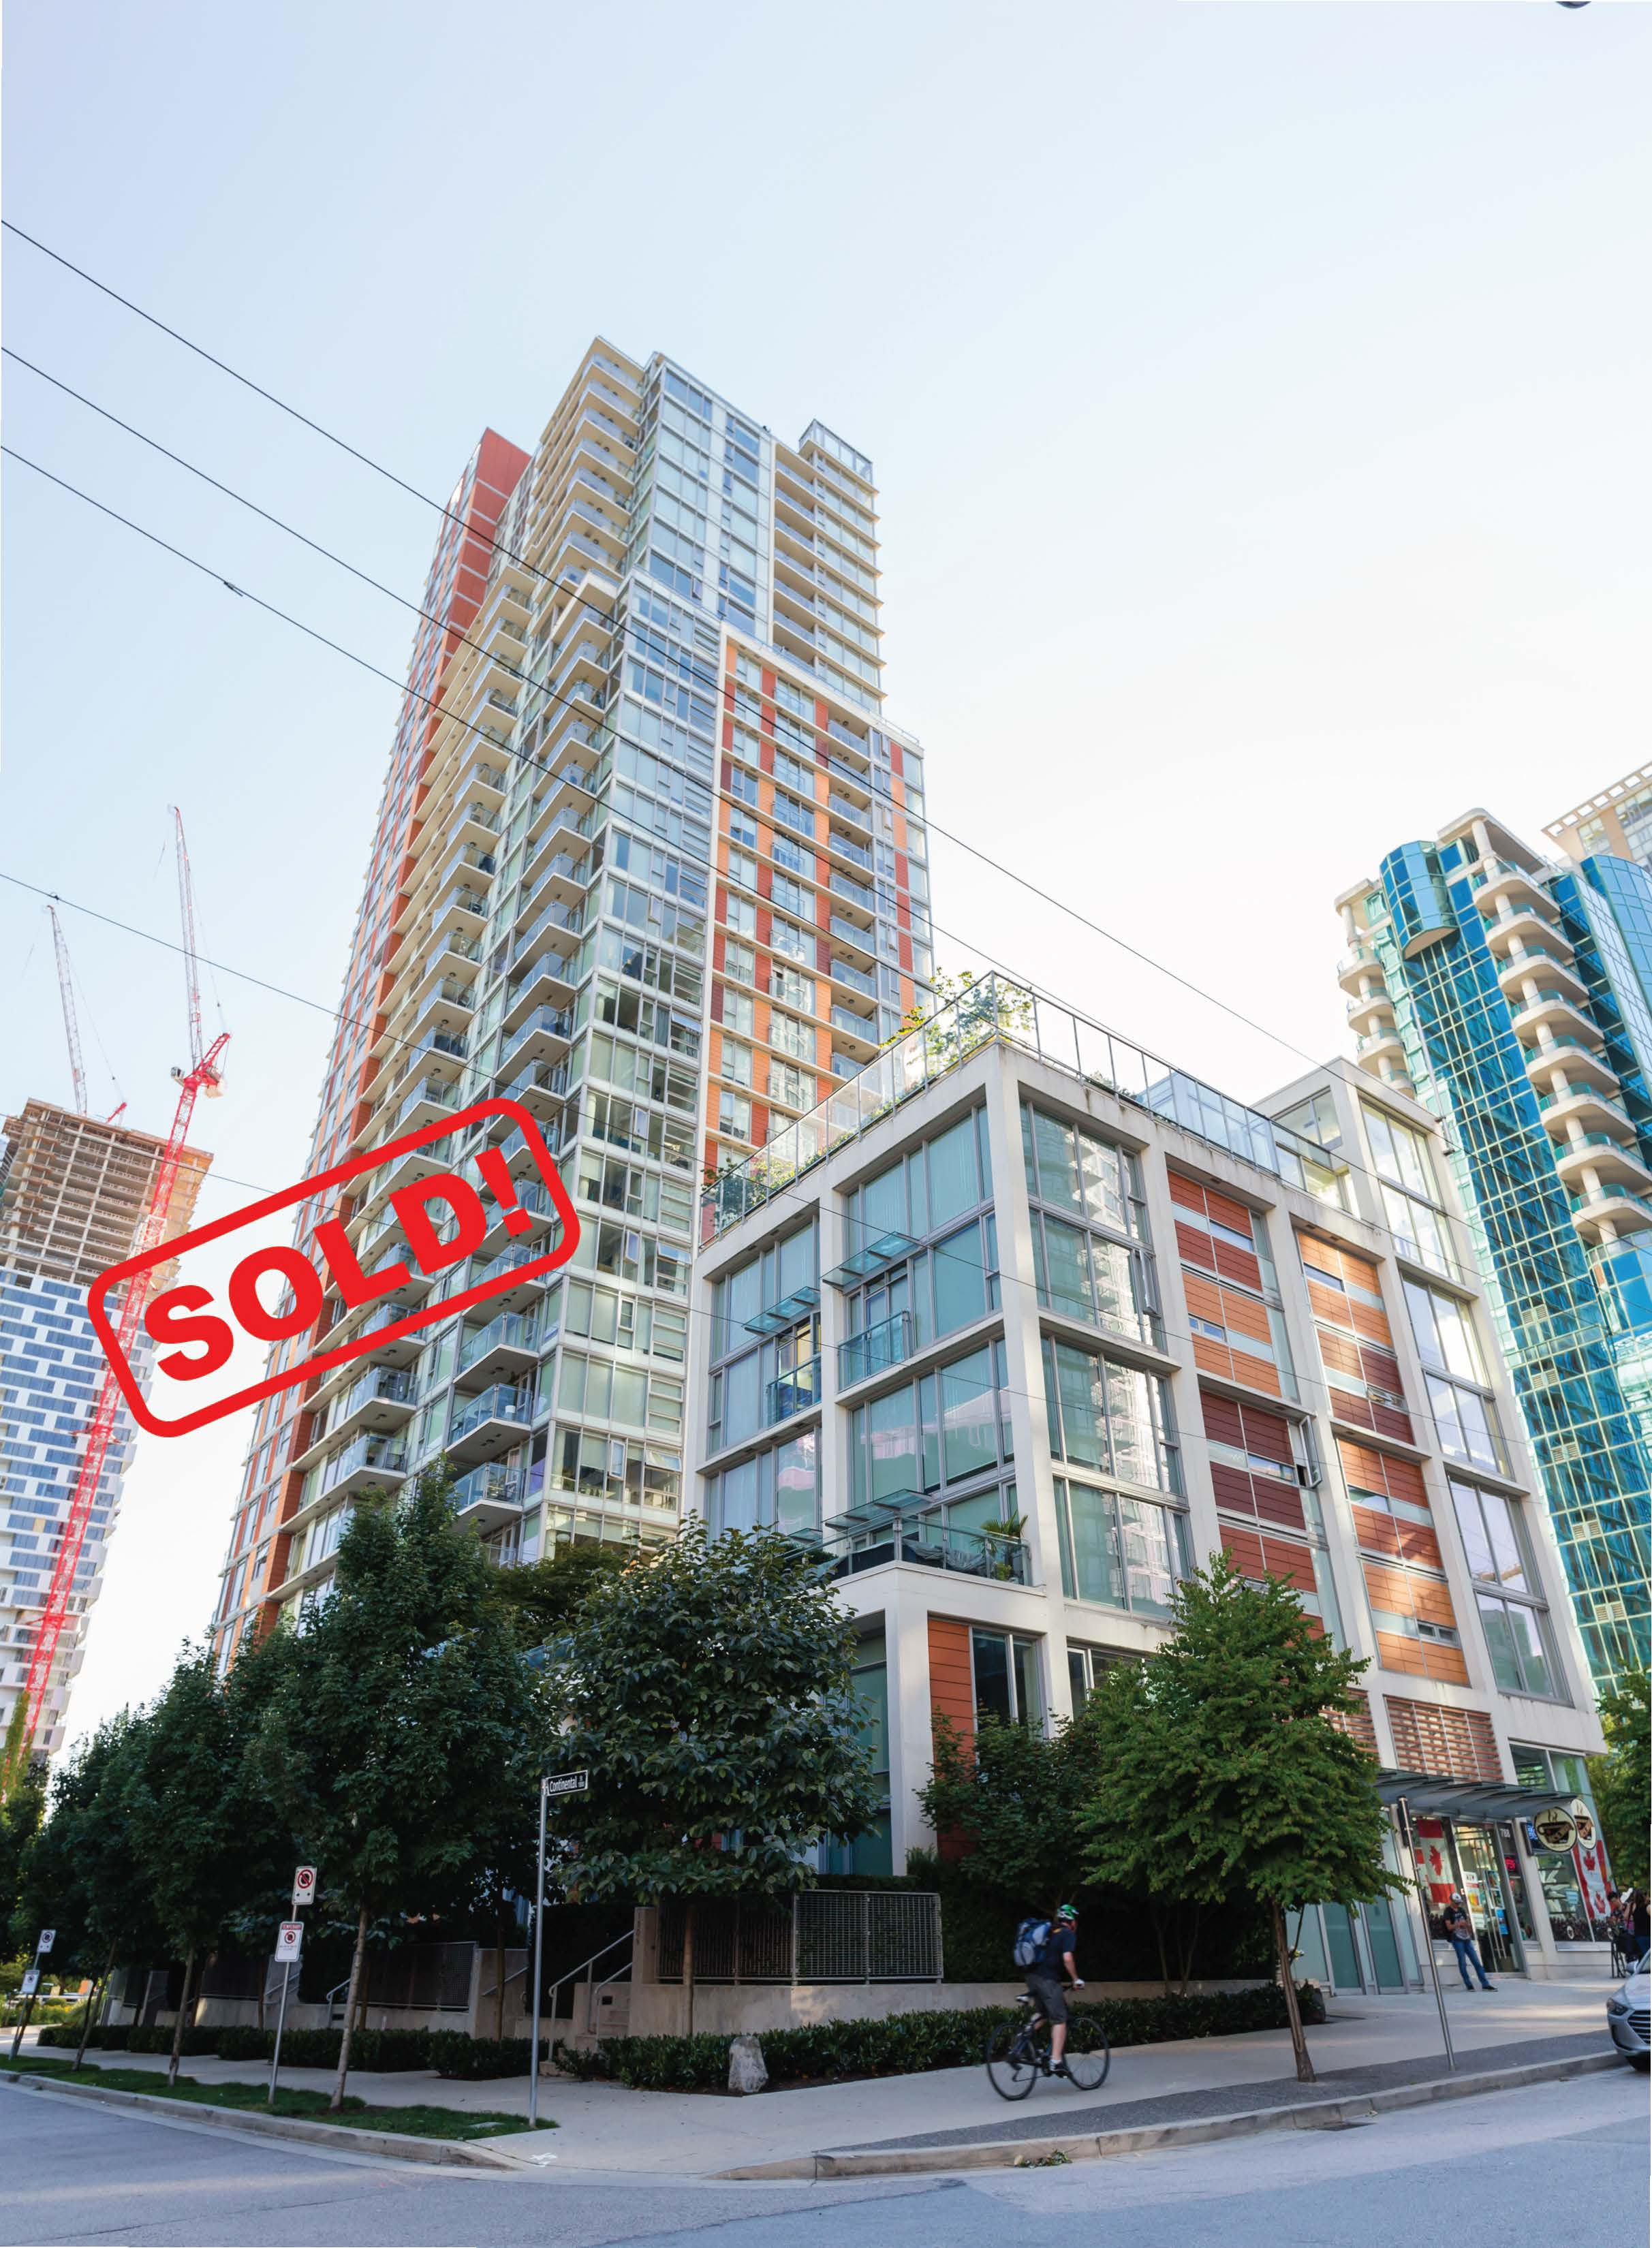 1207-1351 CONTINENTAL AVENUE     SOLD FOR: $1,630,000  2 BED | 2 BATH | 886 SF